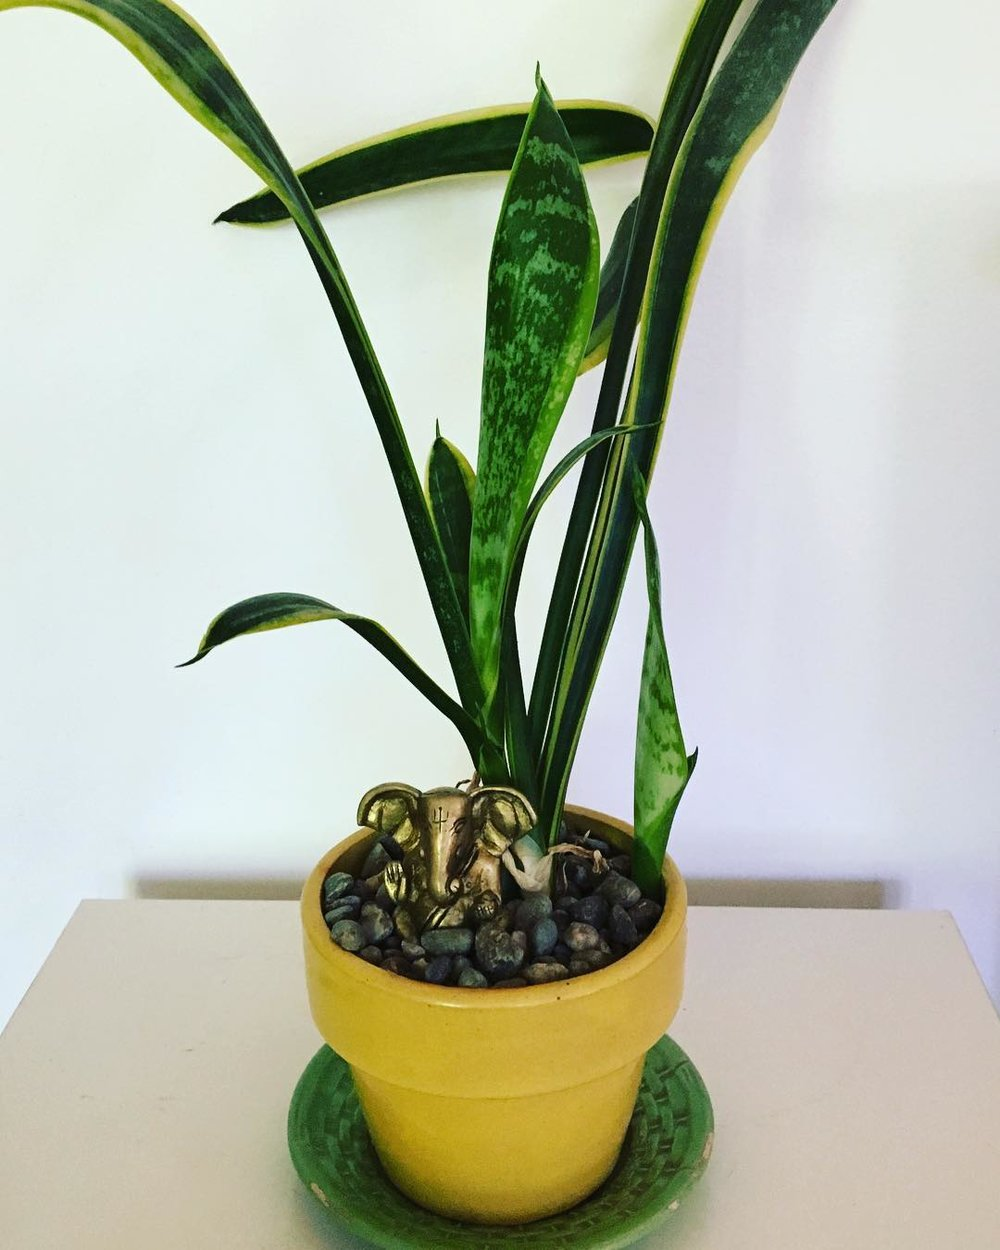 House Plants - Incorporate more houseplants into your work and living spaces to help clean the air of pollutants and chemicals plus boost your mood. The plant shown is sansevieria--it thrives on neglect, withstands low light and works at night absorbing carbon dioxide and releasing oxygen. Tip: add one to your bedroom. (Ganesh statue optional but recommended.) For more plant suggestions to help remove toxic VOC's from your breathing spaces, please visit my article at Sunset.com #littlethings #littleactsbigchange #savetheplanet #houseplants #cleantheair #itstartswithyou #howyoucanhelp #indoorplants #sansevieria #ganesha 🌱